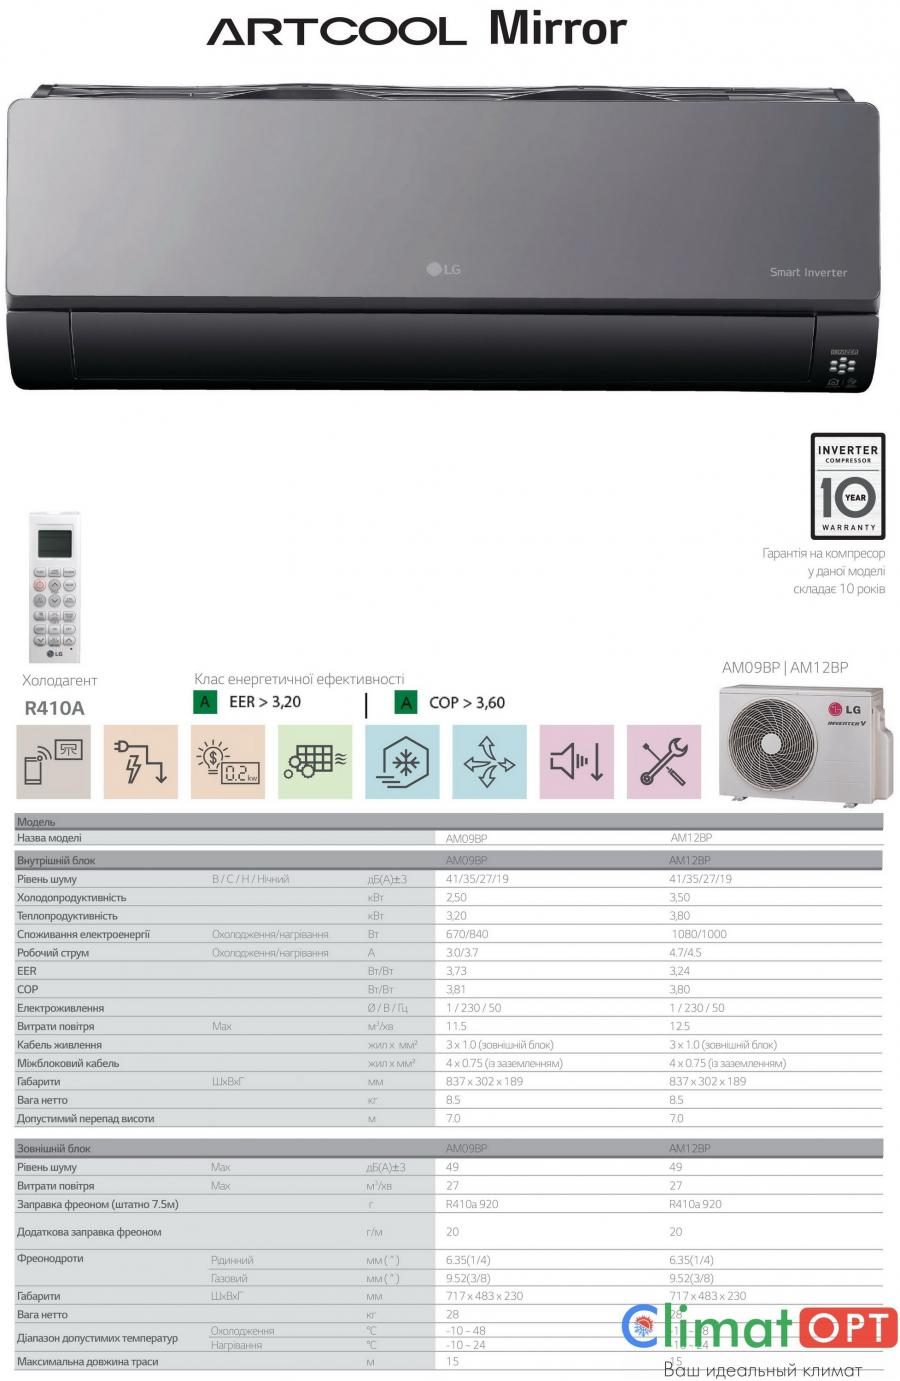 LG Artcool Mirror Black Inverter New 2017